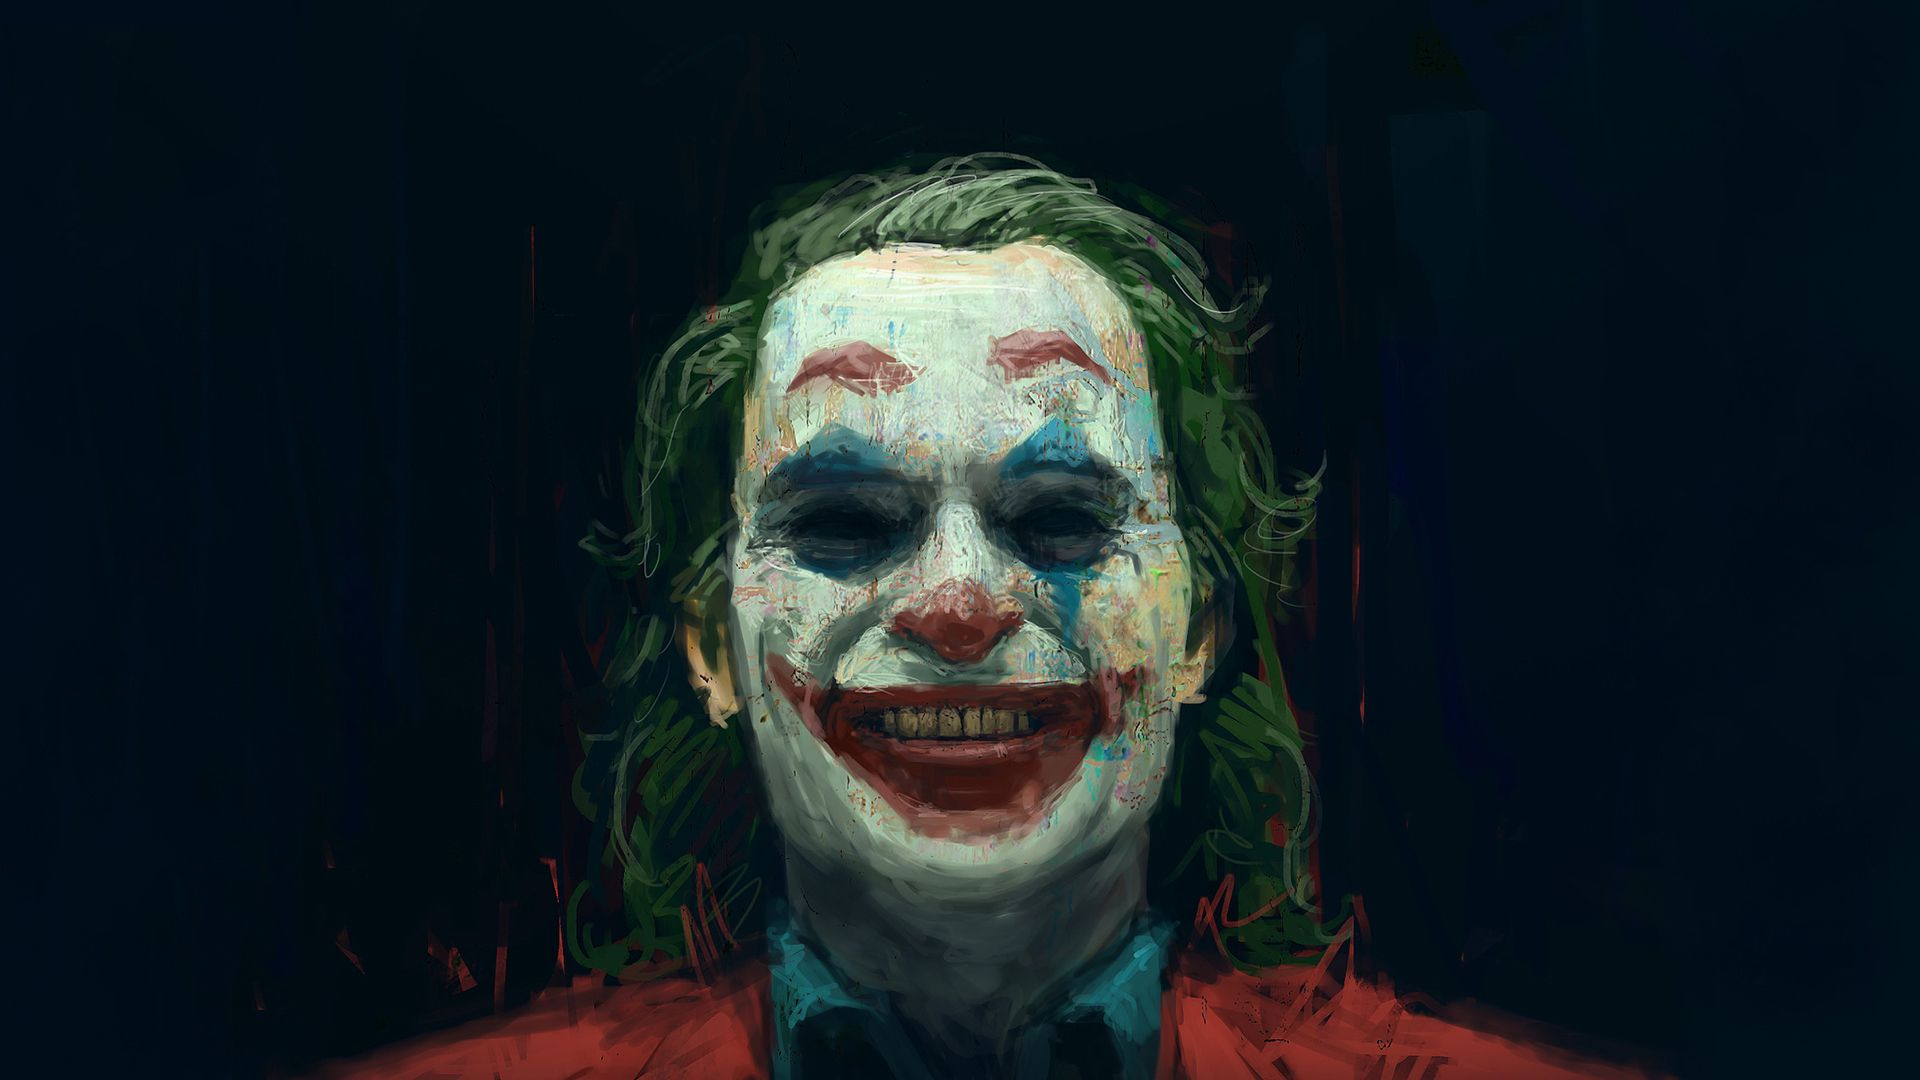 Joker Movie Wallpaper Mywallpapers Site In 2020 Joker Hd Wallpaper Joker Wallpapers Movie Wallpapers